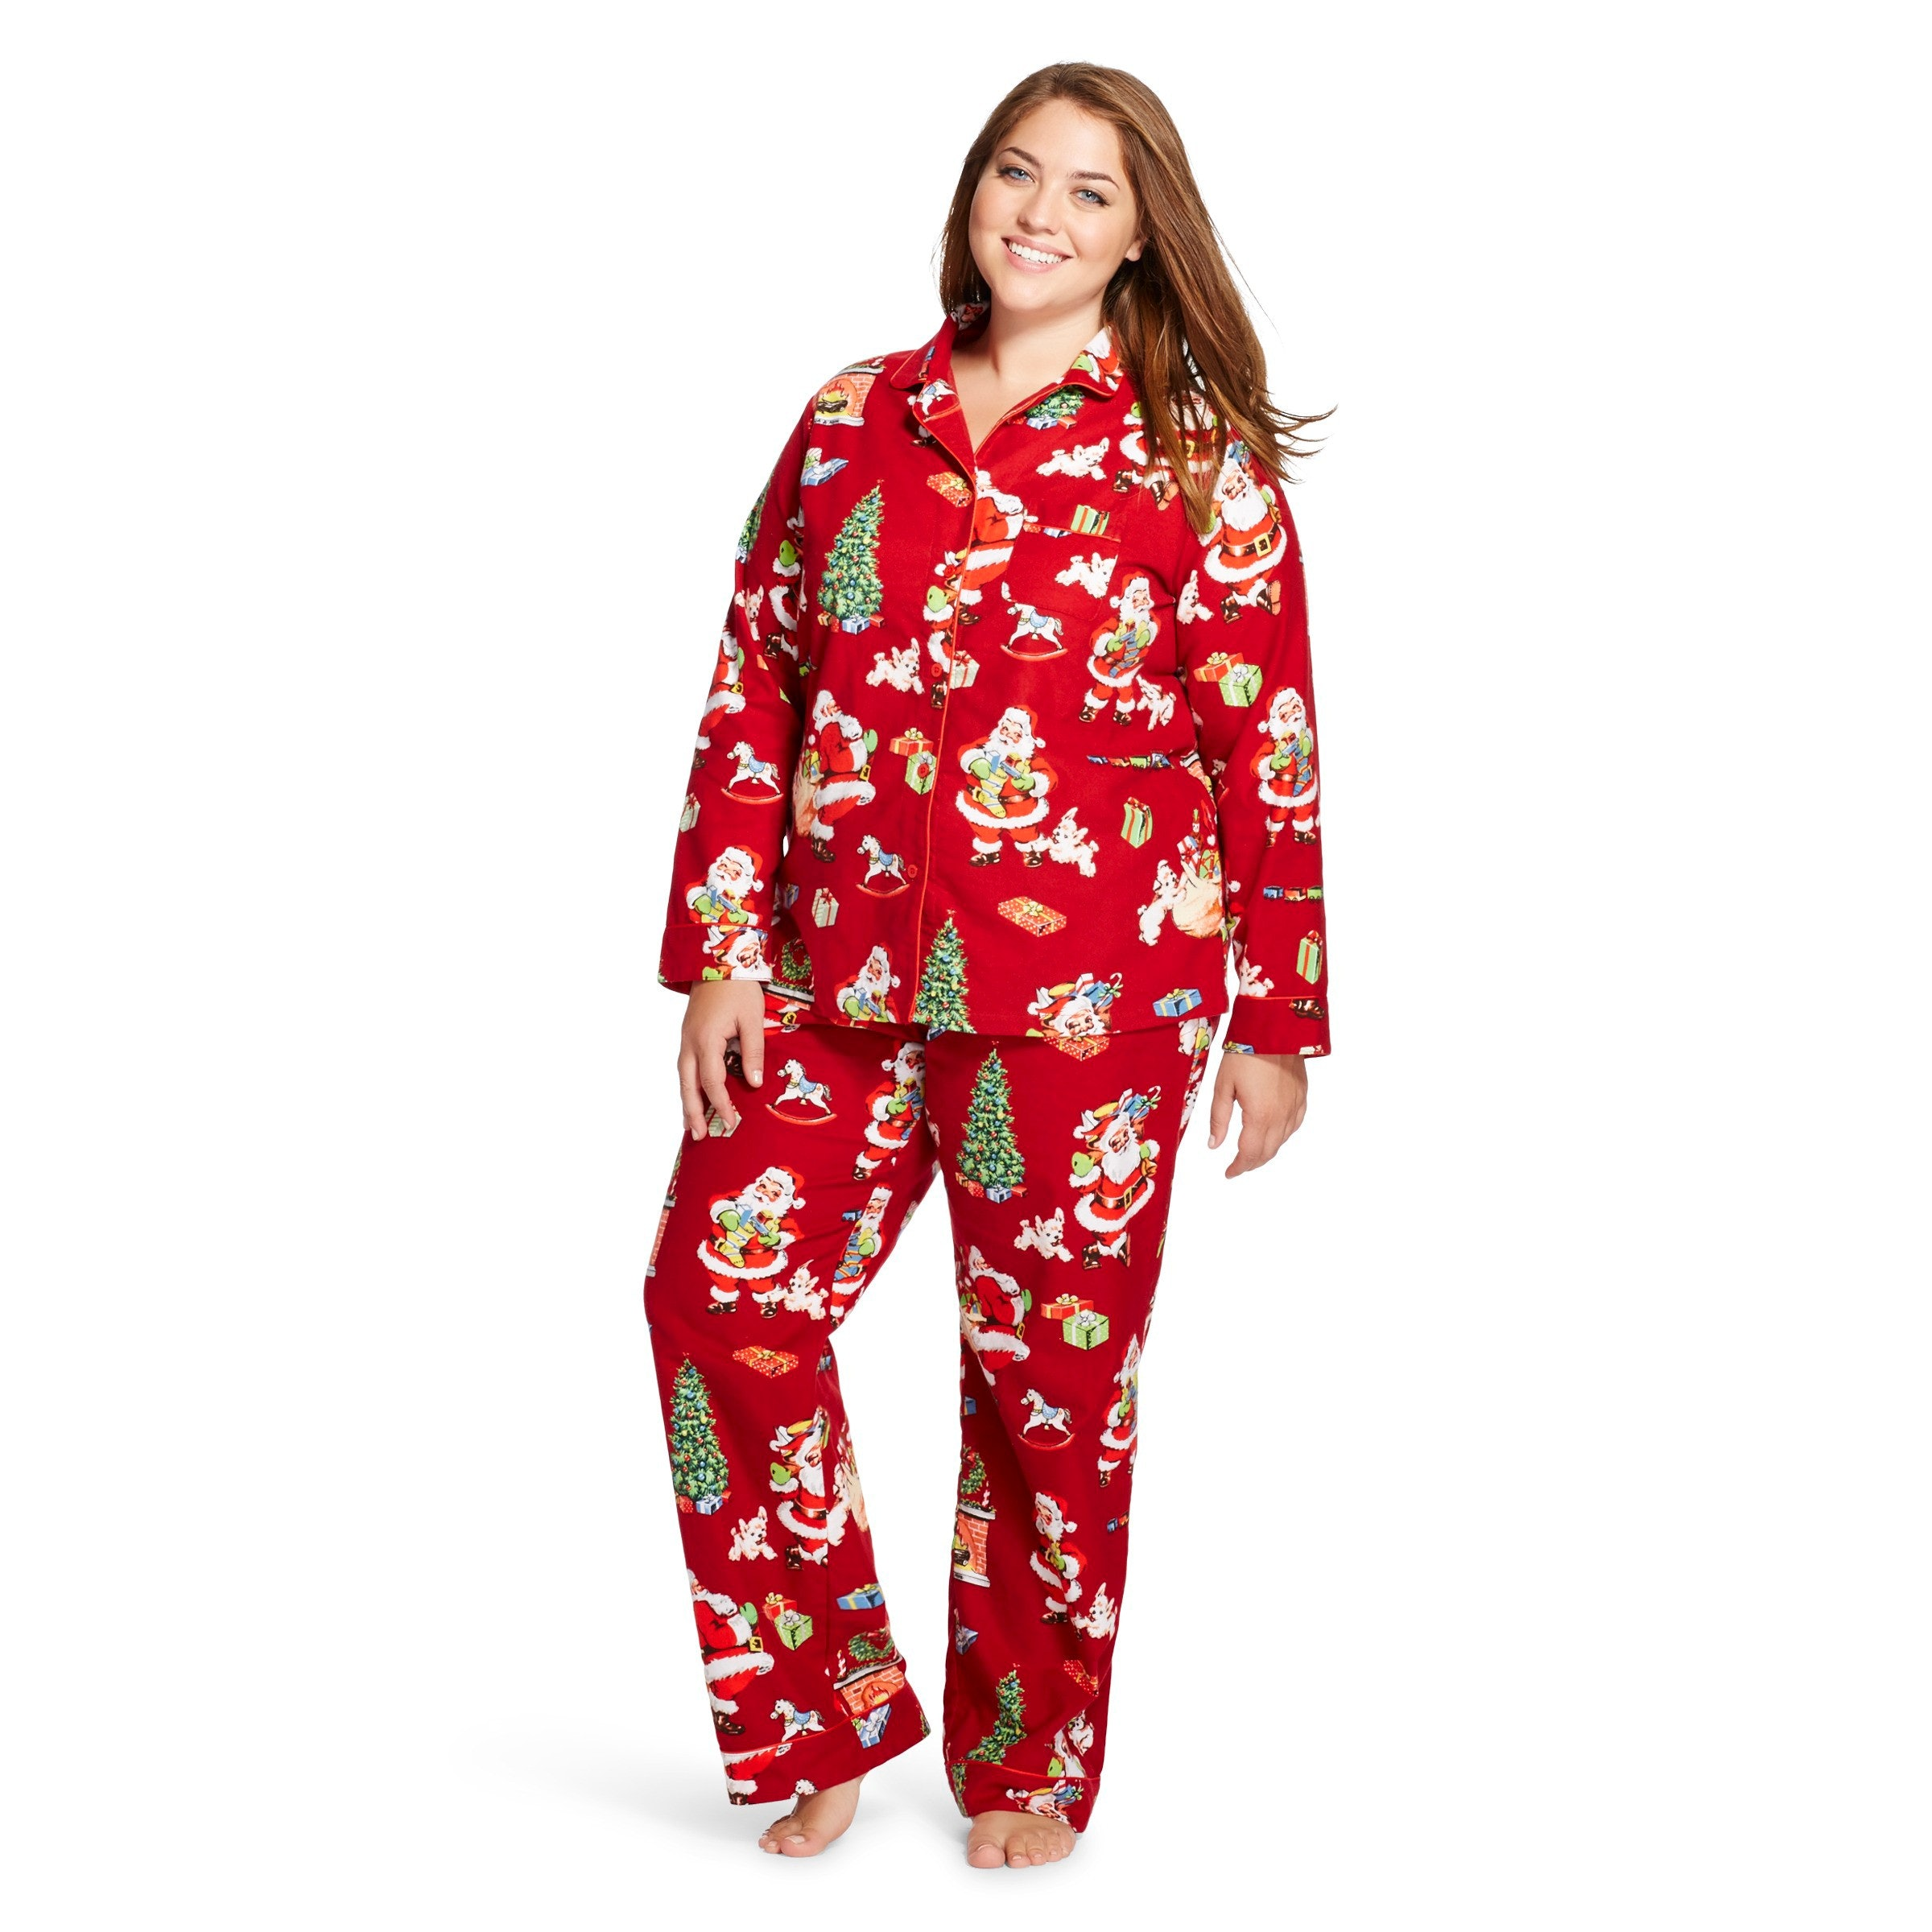 Family fun with our matching family pajamas. Comfy matching pjs for adults, boys, girls, baby and even dogs. Browse our collections!Hanna Andersson Family Matching PJ's The family pj's that started it all, in legendary organic quality. Introducing 35+ collections. Holiday pj's have arrived, in .